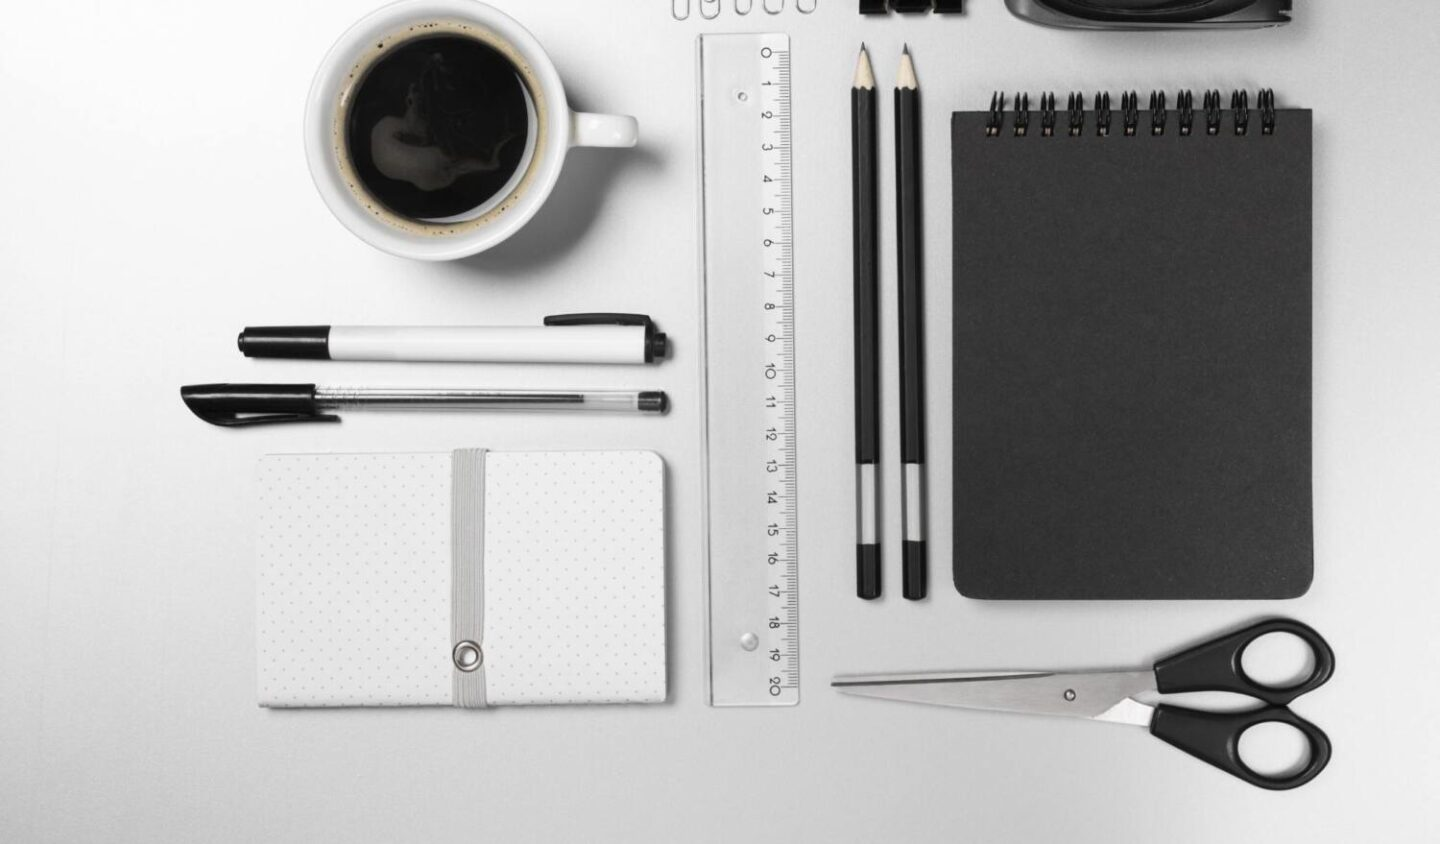 Top 5 Stationary Essentials For Every University Student